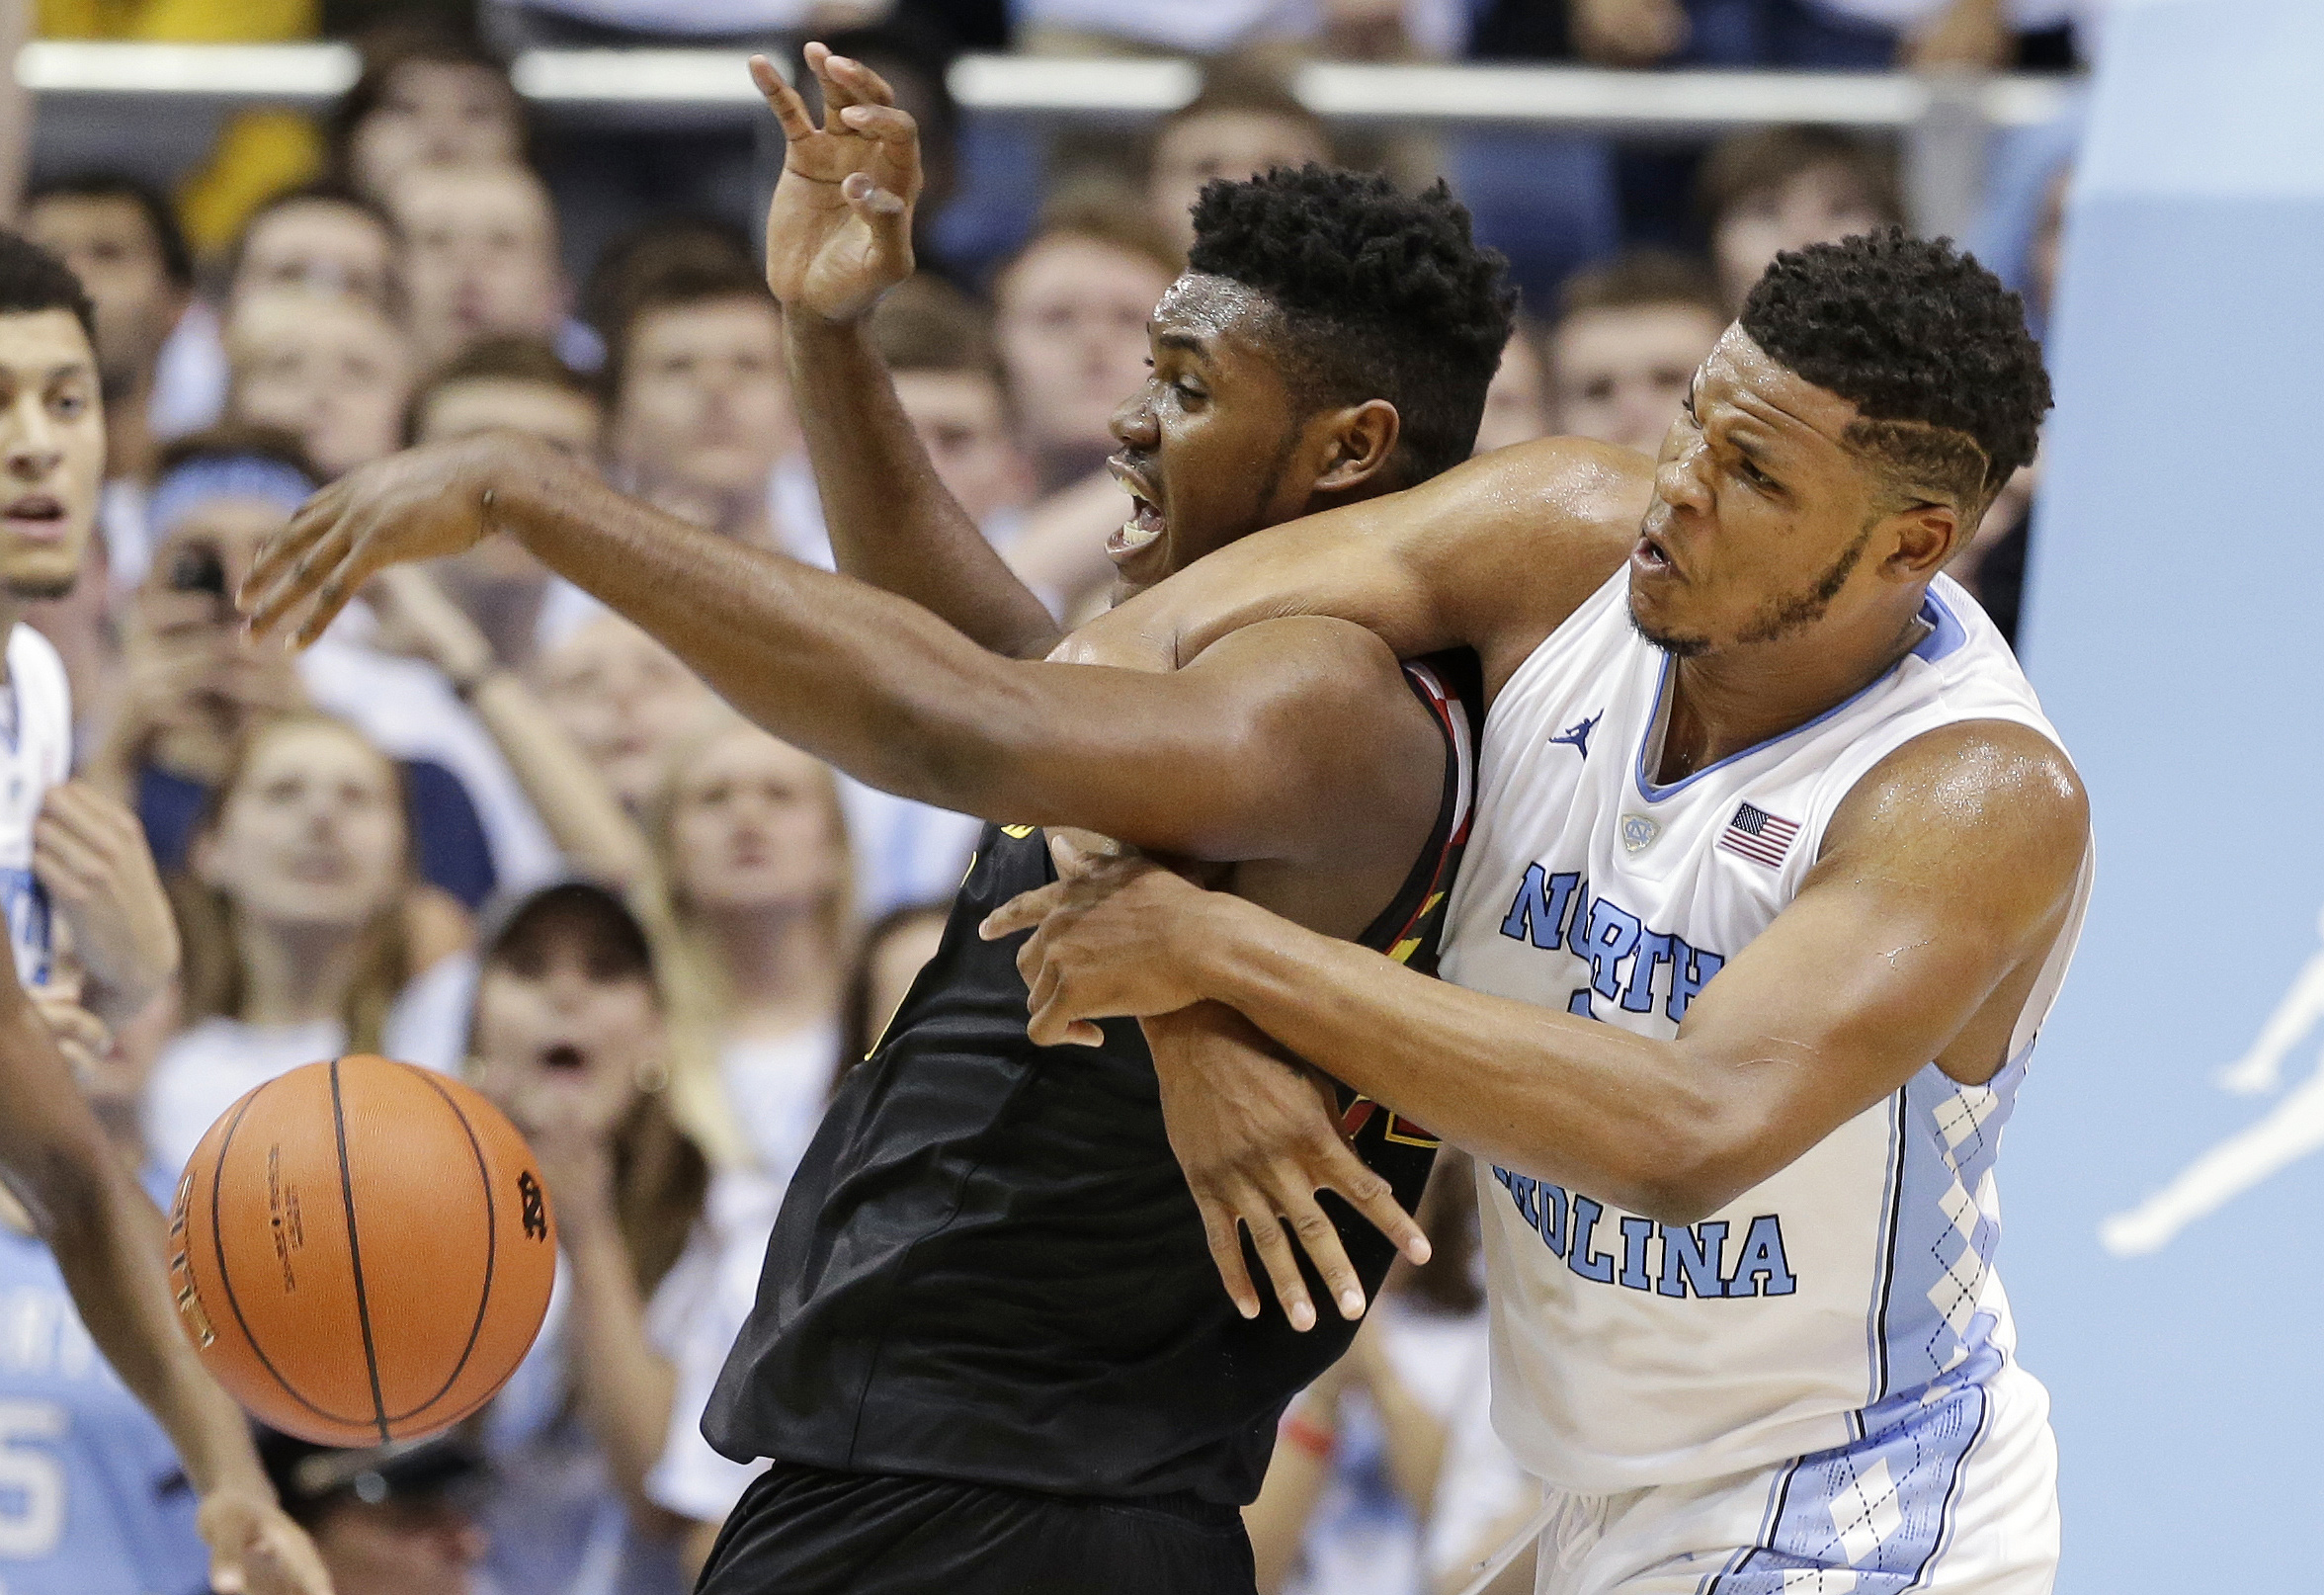 North Carolina's Kennedy Meeks, right, and Maryland's Diamond Stone vie for possession of the ball during the second half of an NCAA college basketball game in Chapel Hill, N.C., Tuesday, Dec. 1, 2015. North Carolina won 89-81. (AP Photo/Gerry Broome)